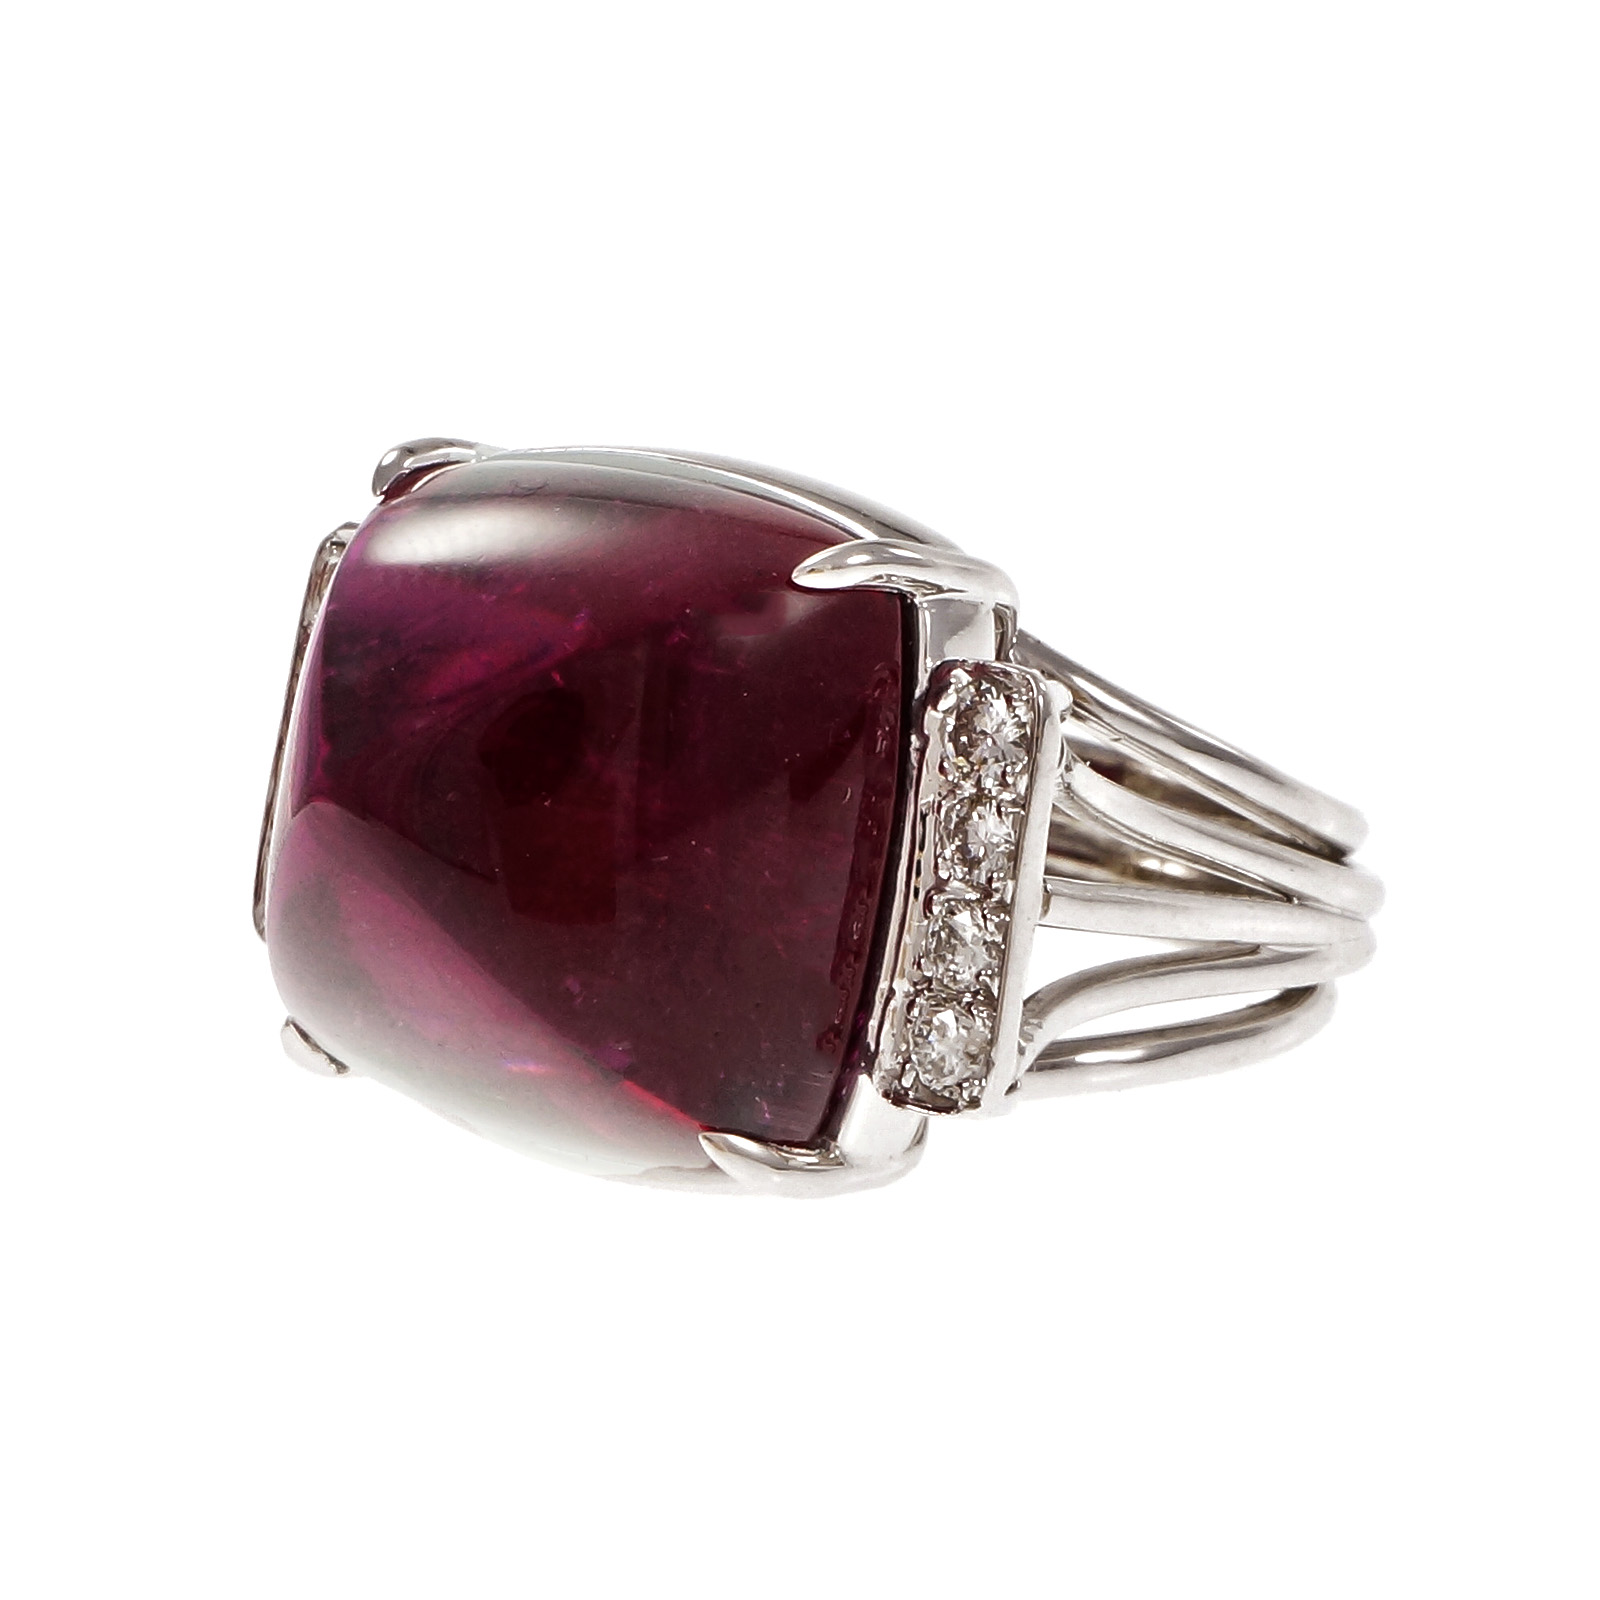 "Image of ""Platinum Large Sugar Loaf Cabochon Rubellite Ring Red Tourmaline Ring"""